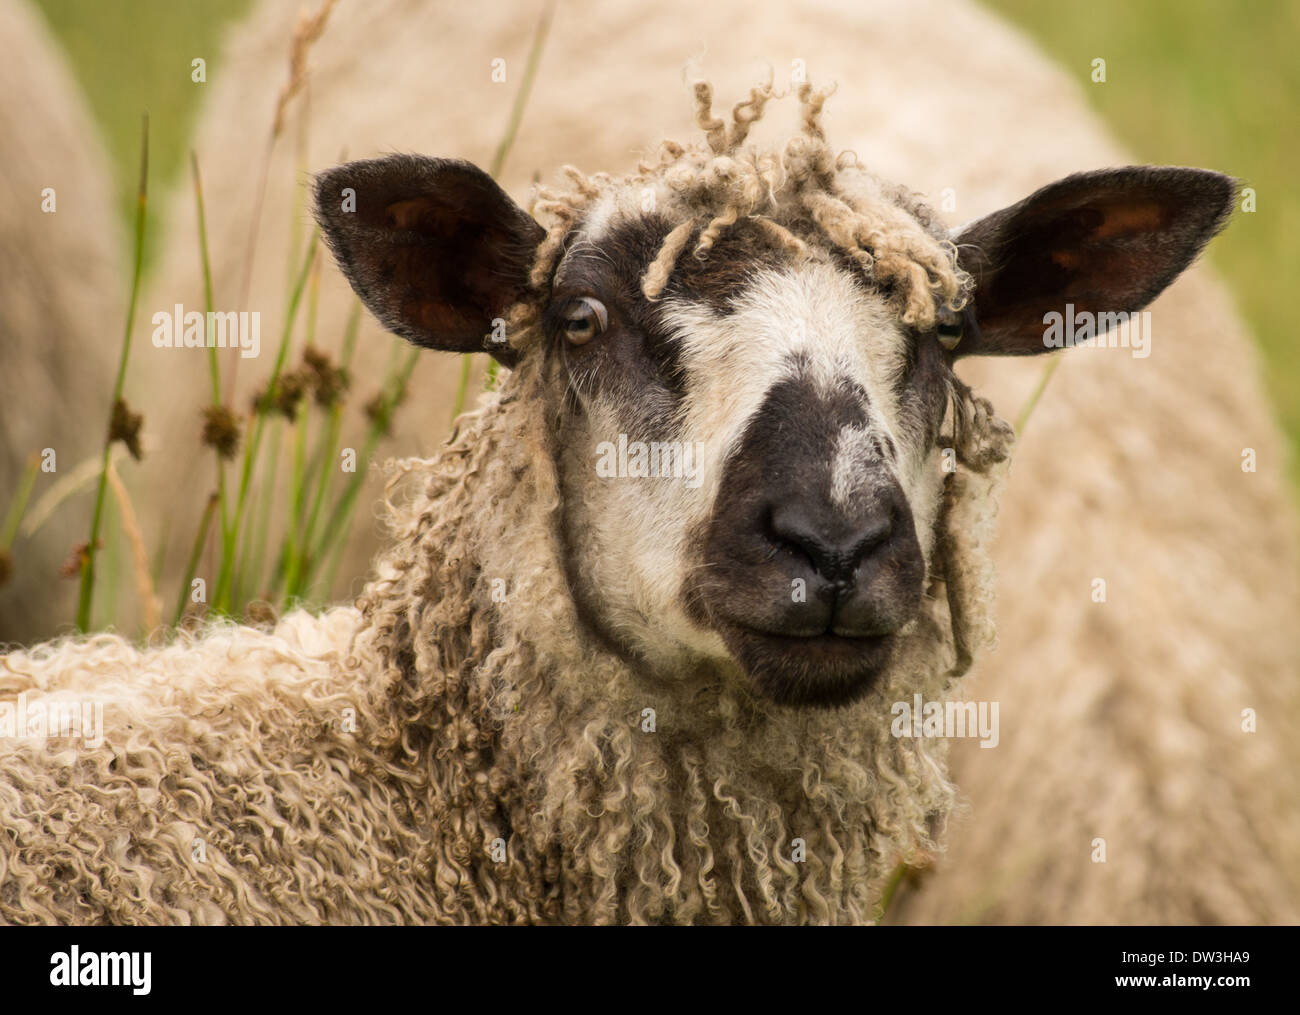 Portrait of a Wensleydale sheep. Stock Photo